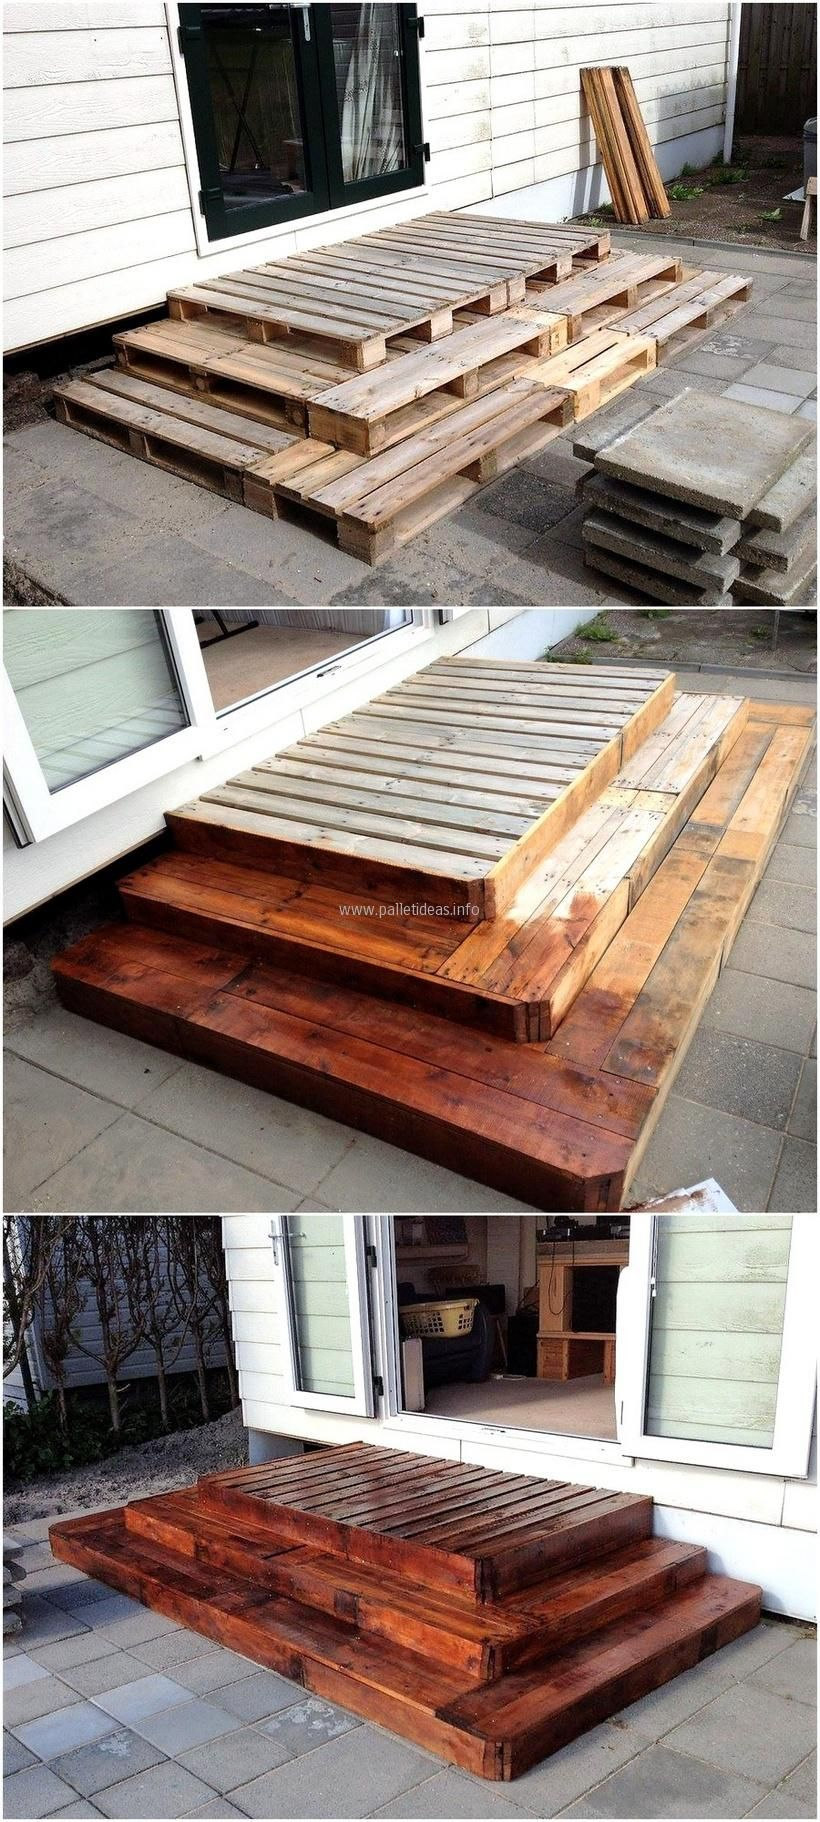 Should we tear down the deck and go with a large patio - I like this pallet idea for steps